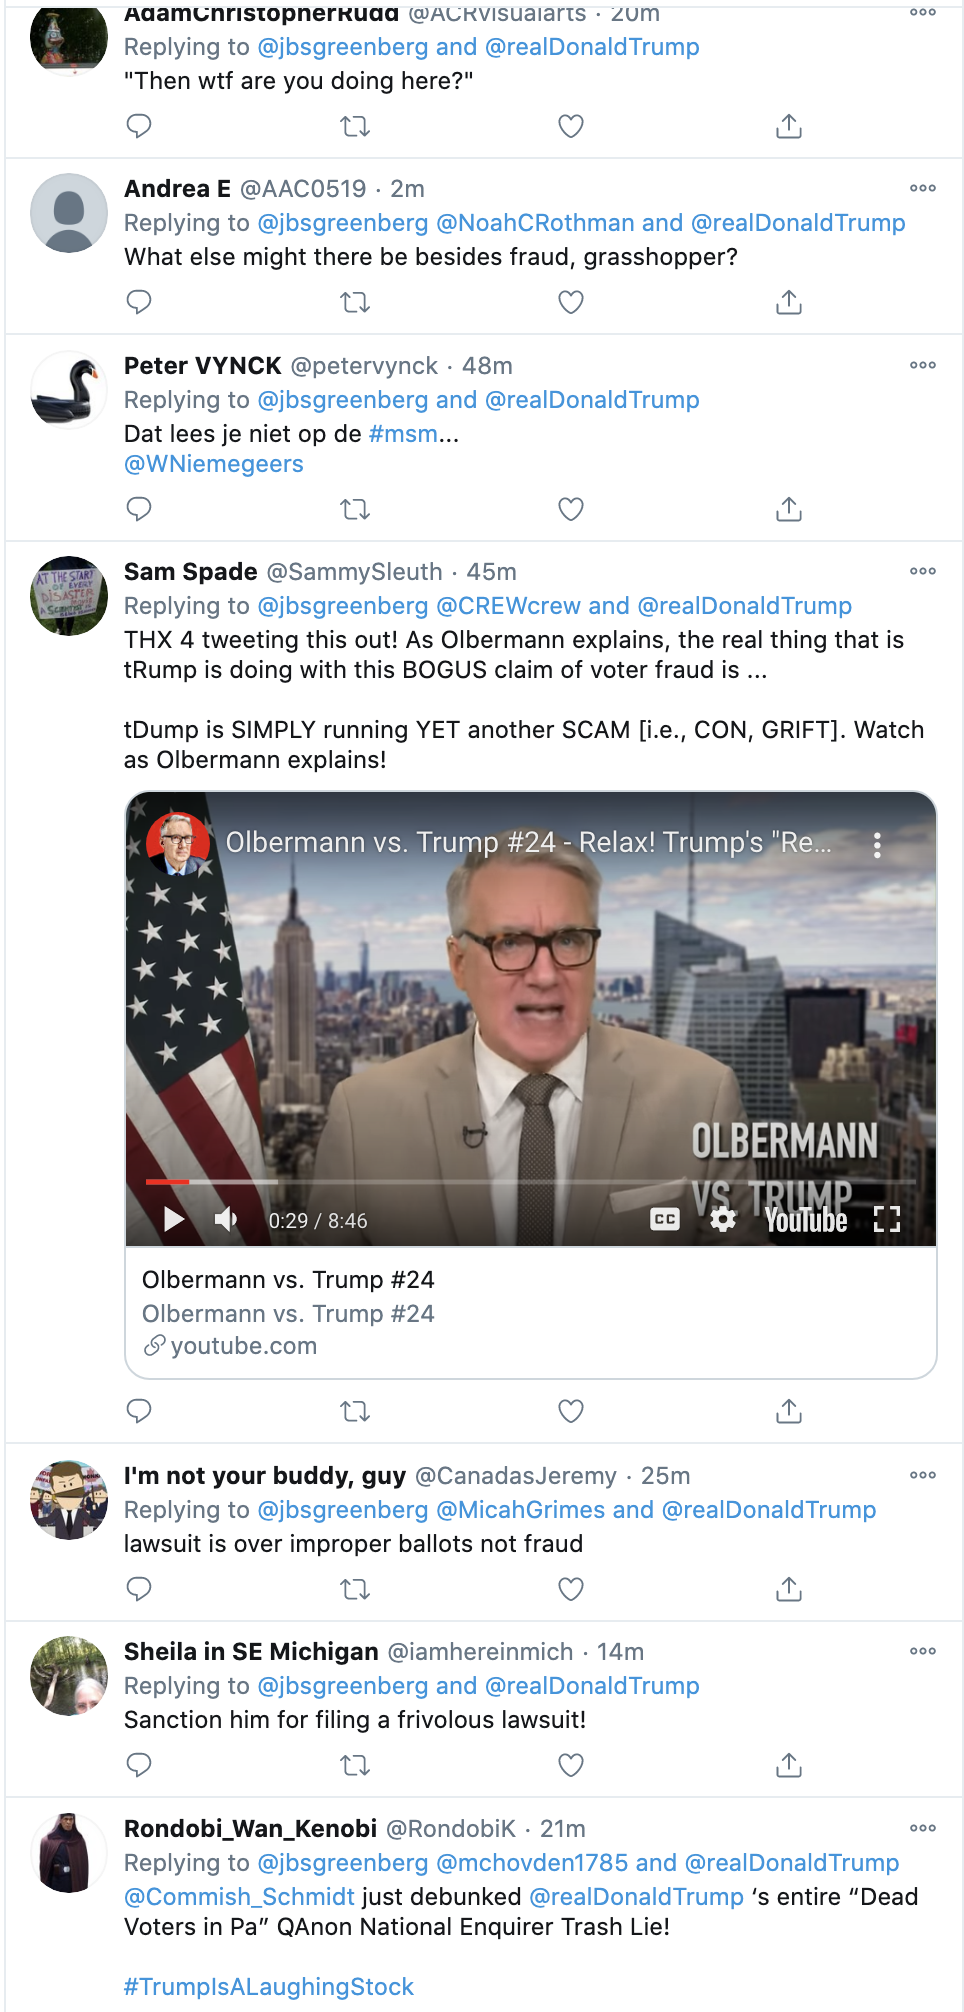 Screen-Shot-2020-11-11-at-8.23.36-AM Pennsylvania Judge Embarrasses Trump Lawyer Over Pathetic Evidence Featured Media National Security Politics Top Stories